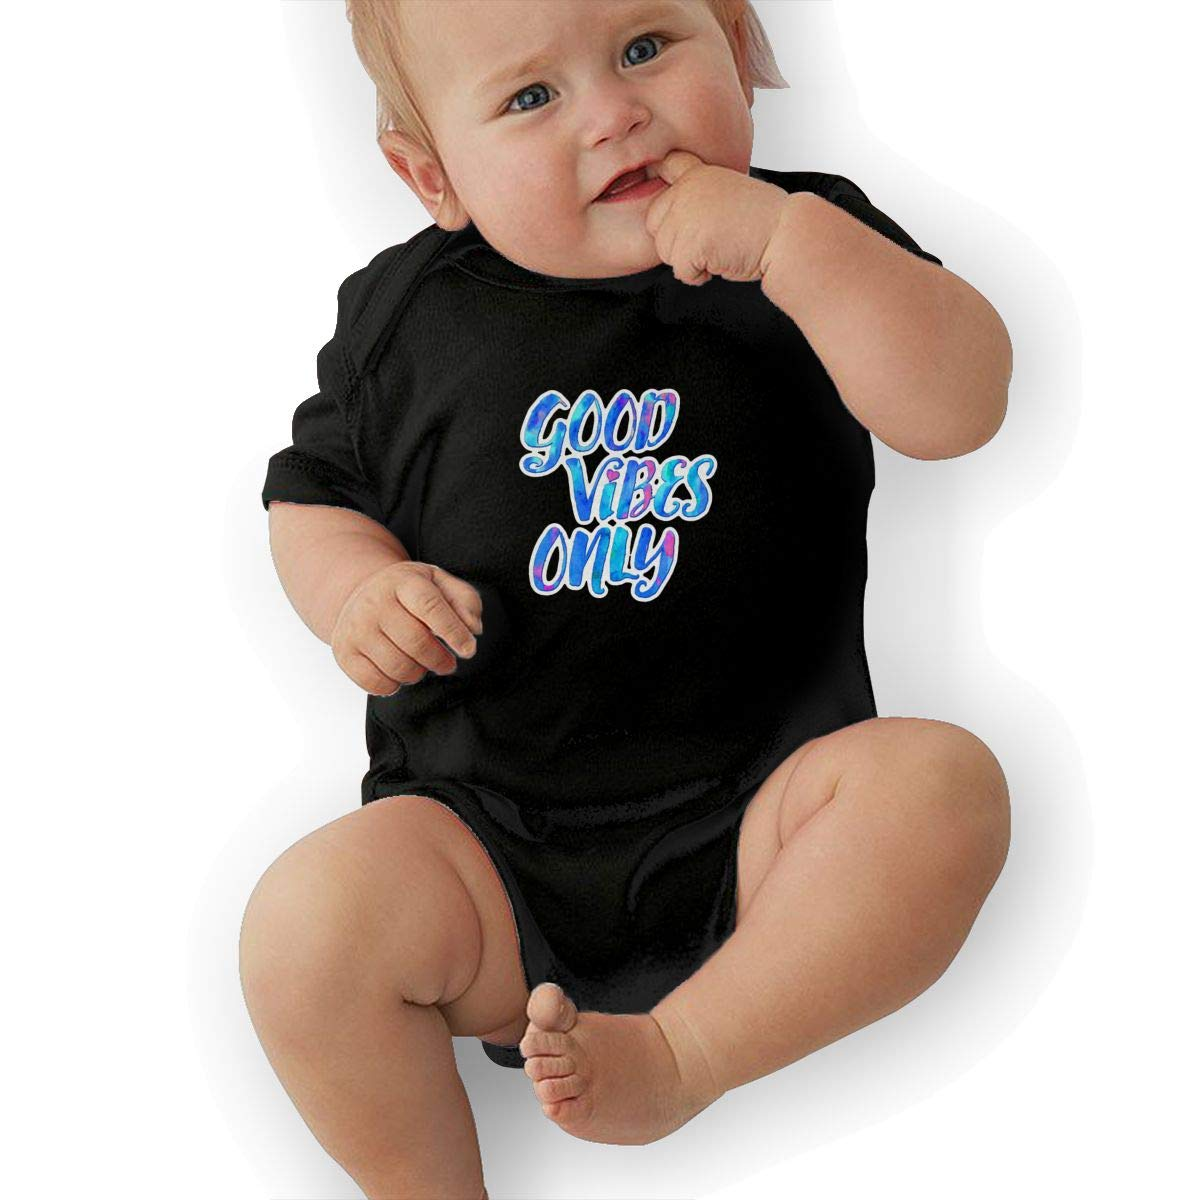 Good Vibes Only Baby Pajamas Bodysuits Clothes Onesies Jumpsuits Outfits Black